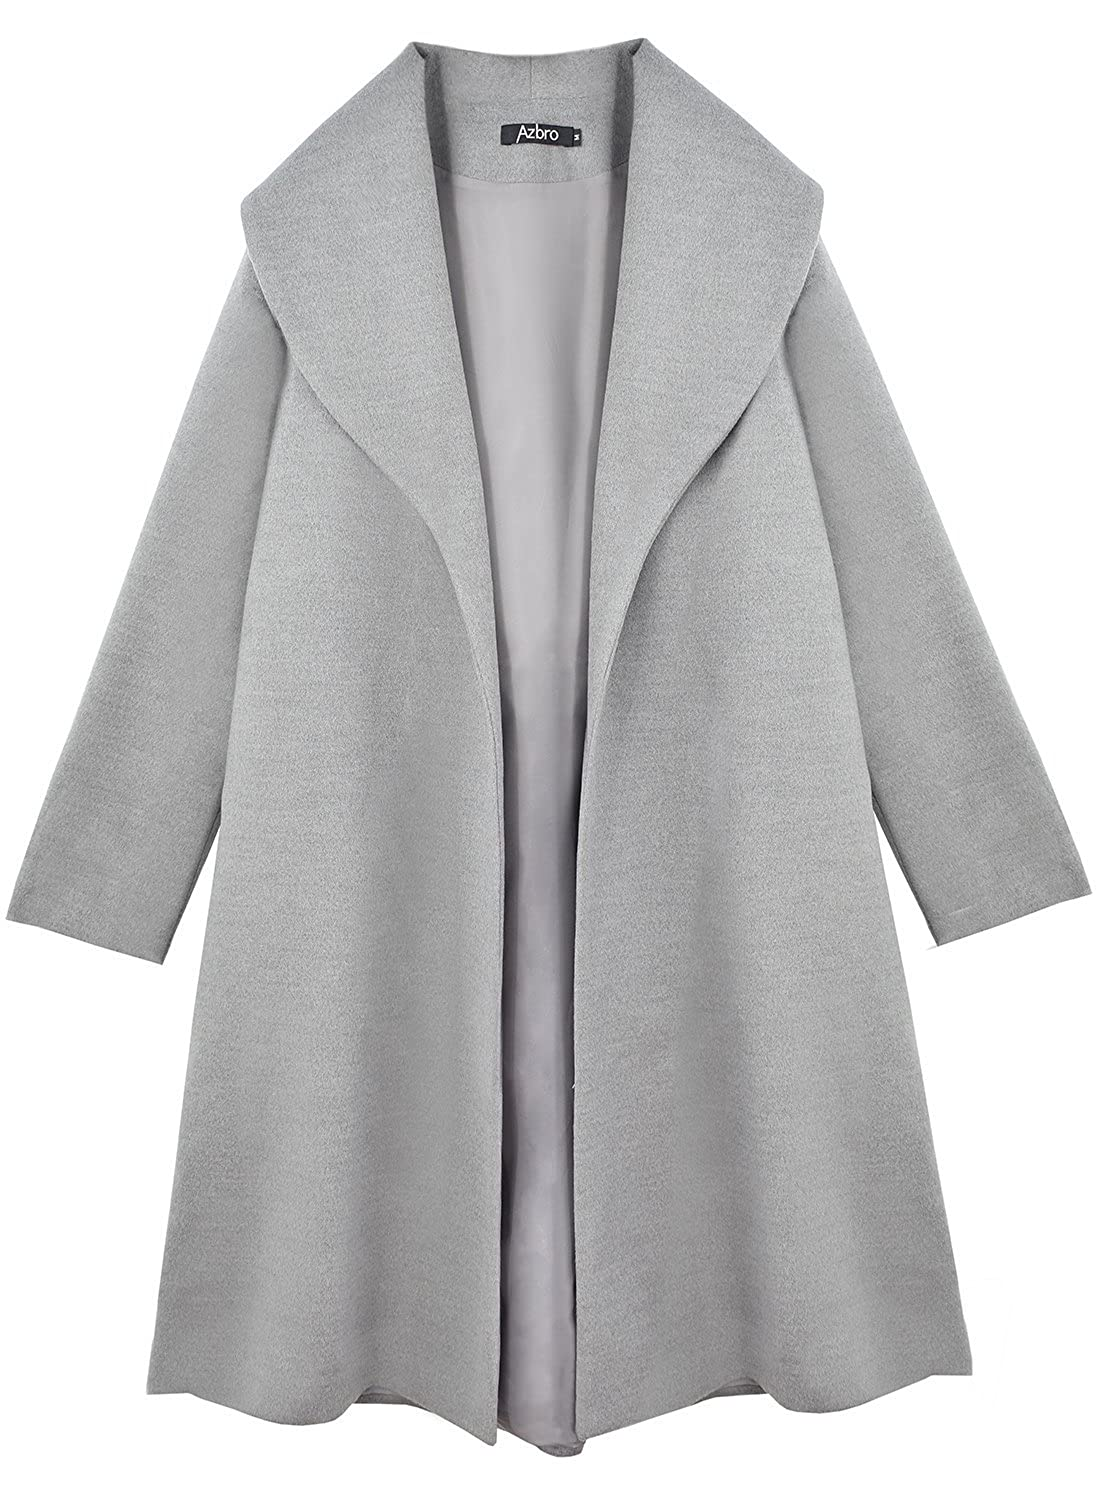 Azbro Women's Elegant Turn-Down Collar Open Front Long Coat